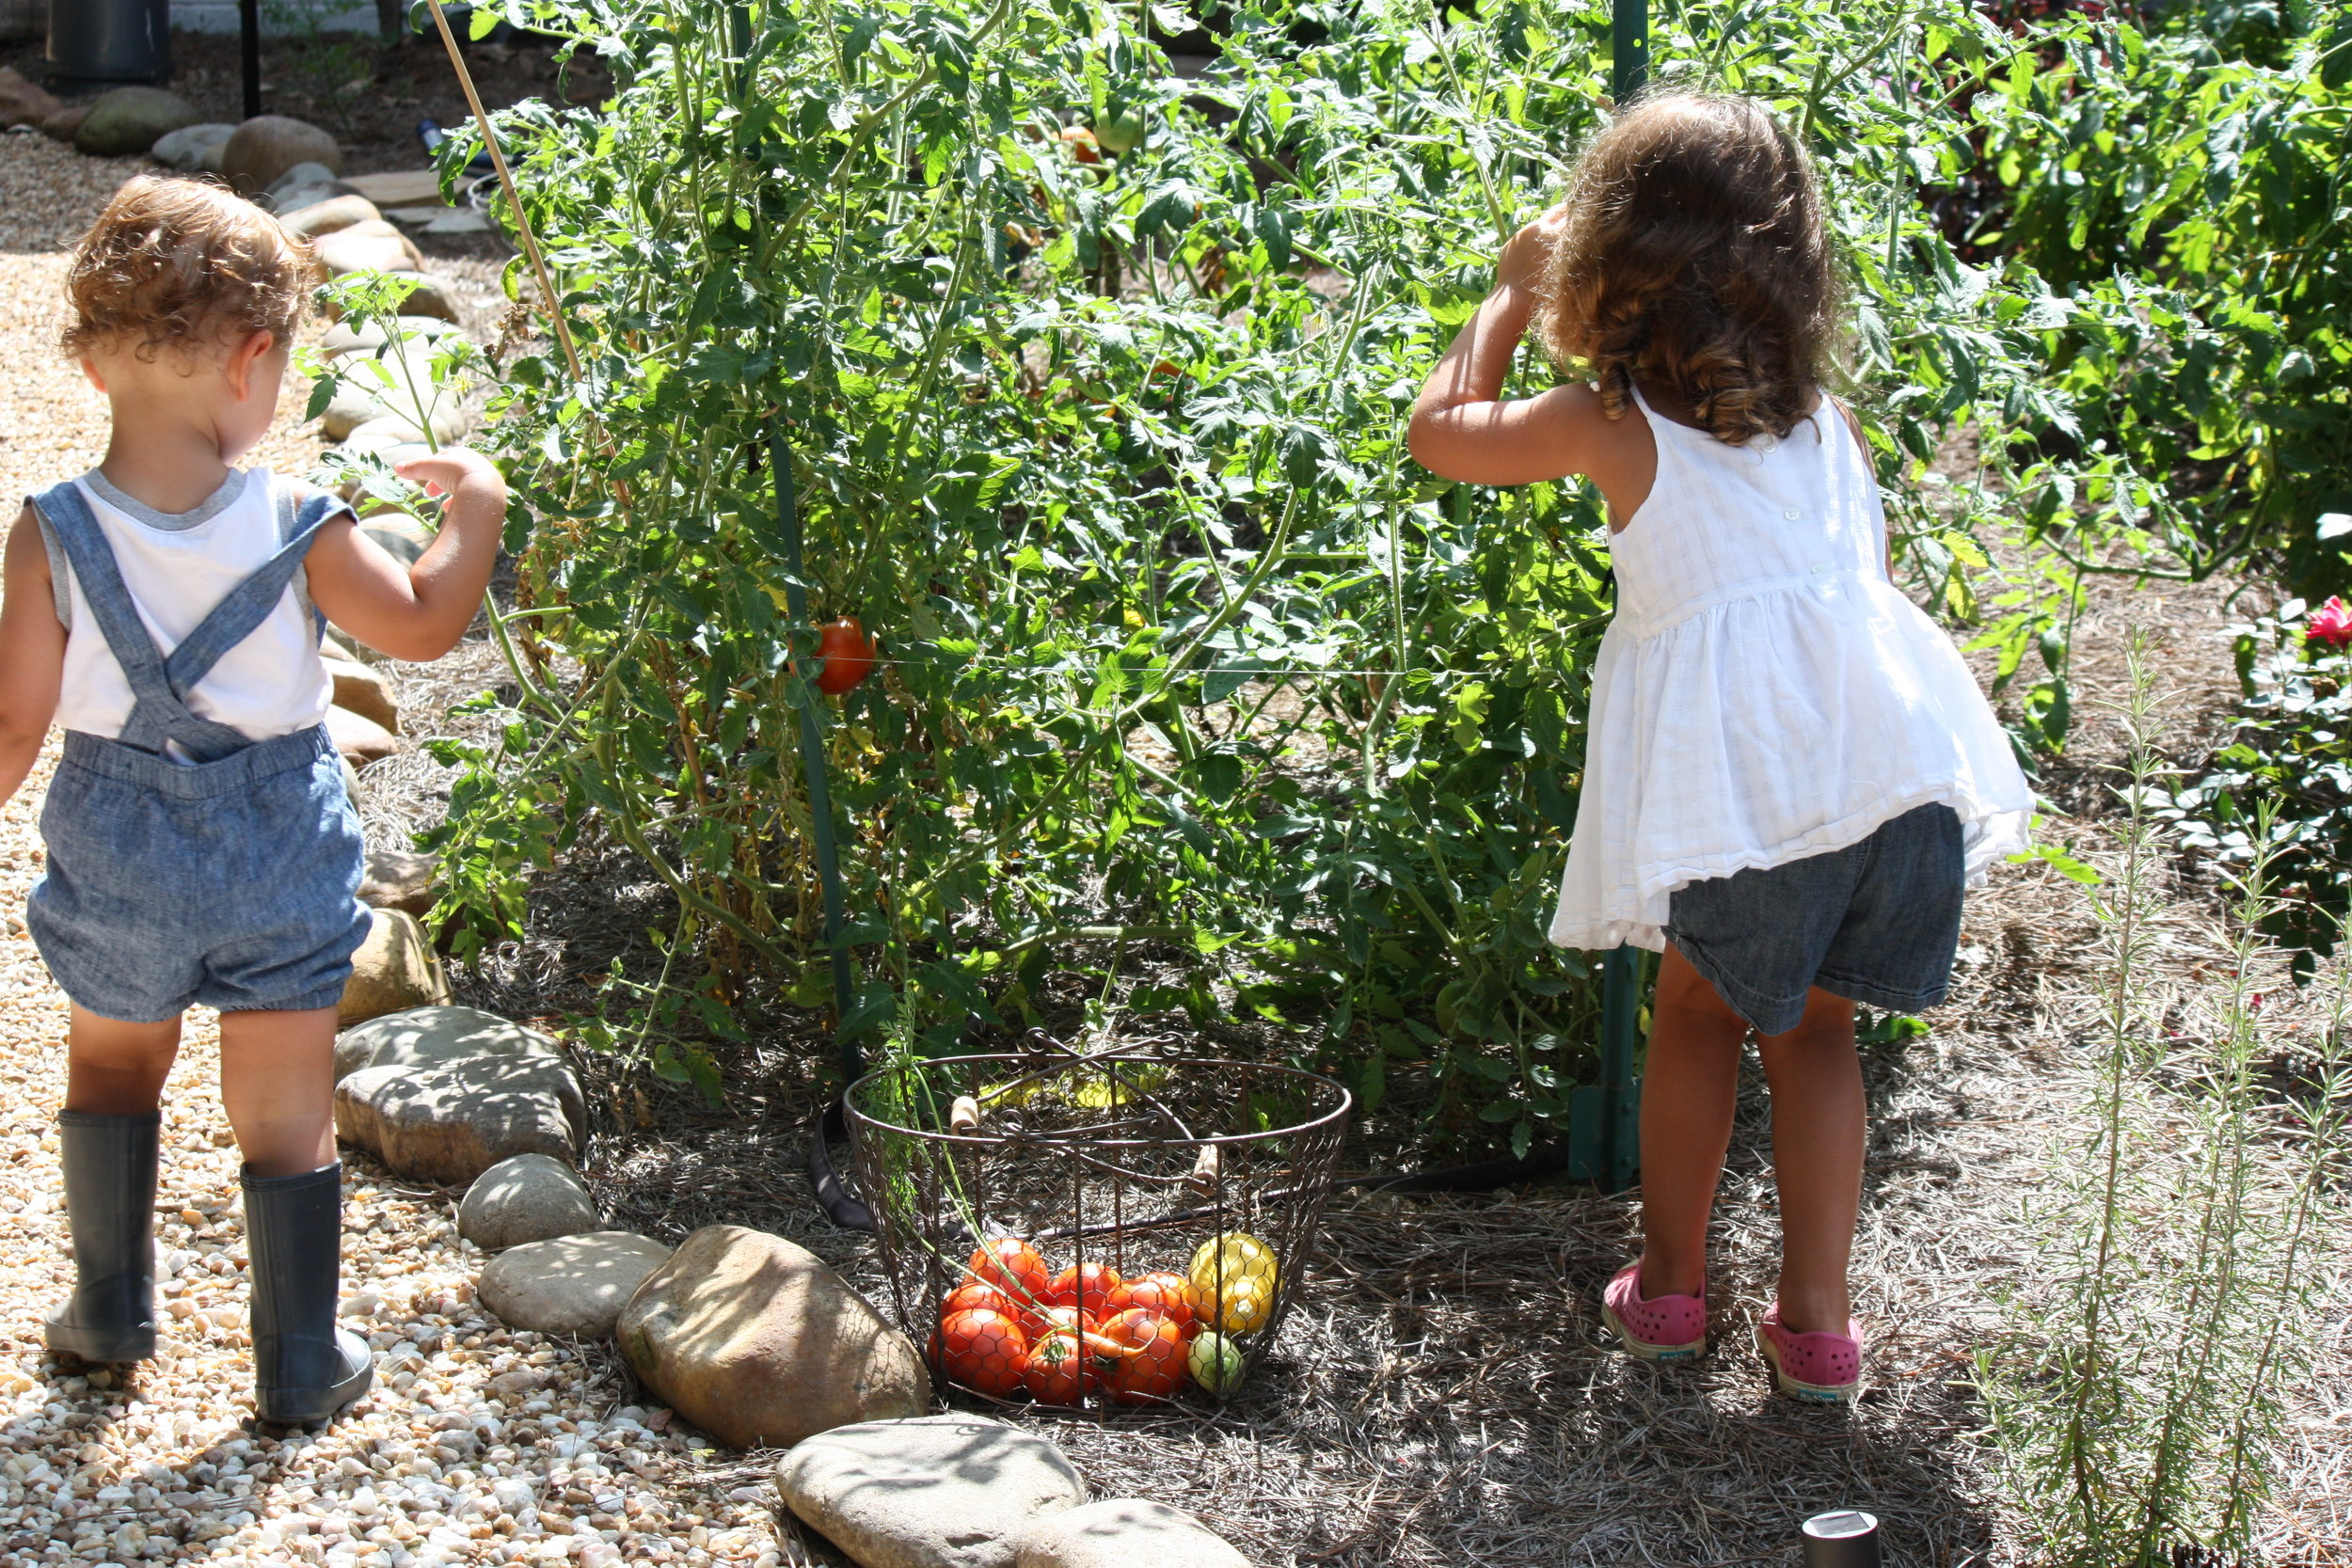 My little pickers this summer.